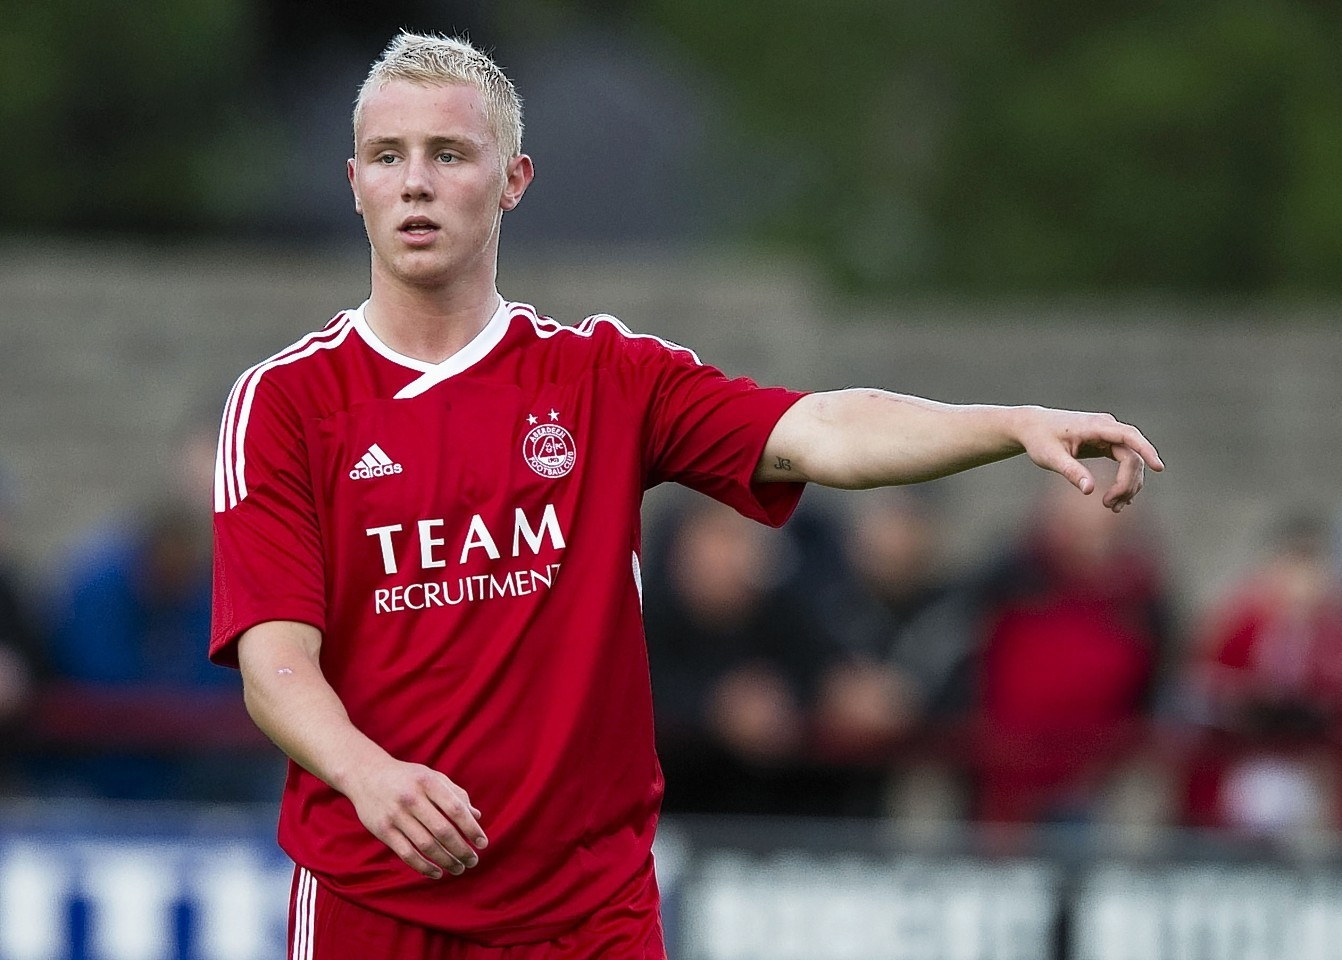 Jack Grimmer became Aberdeen's youngest ever first team player in 2010